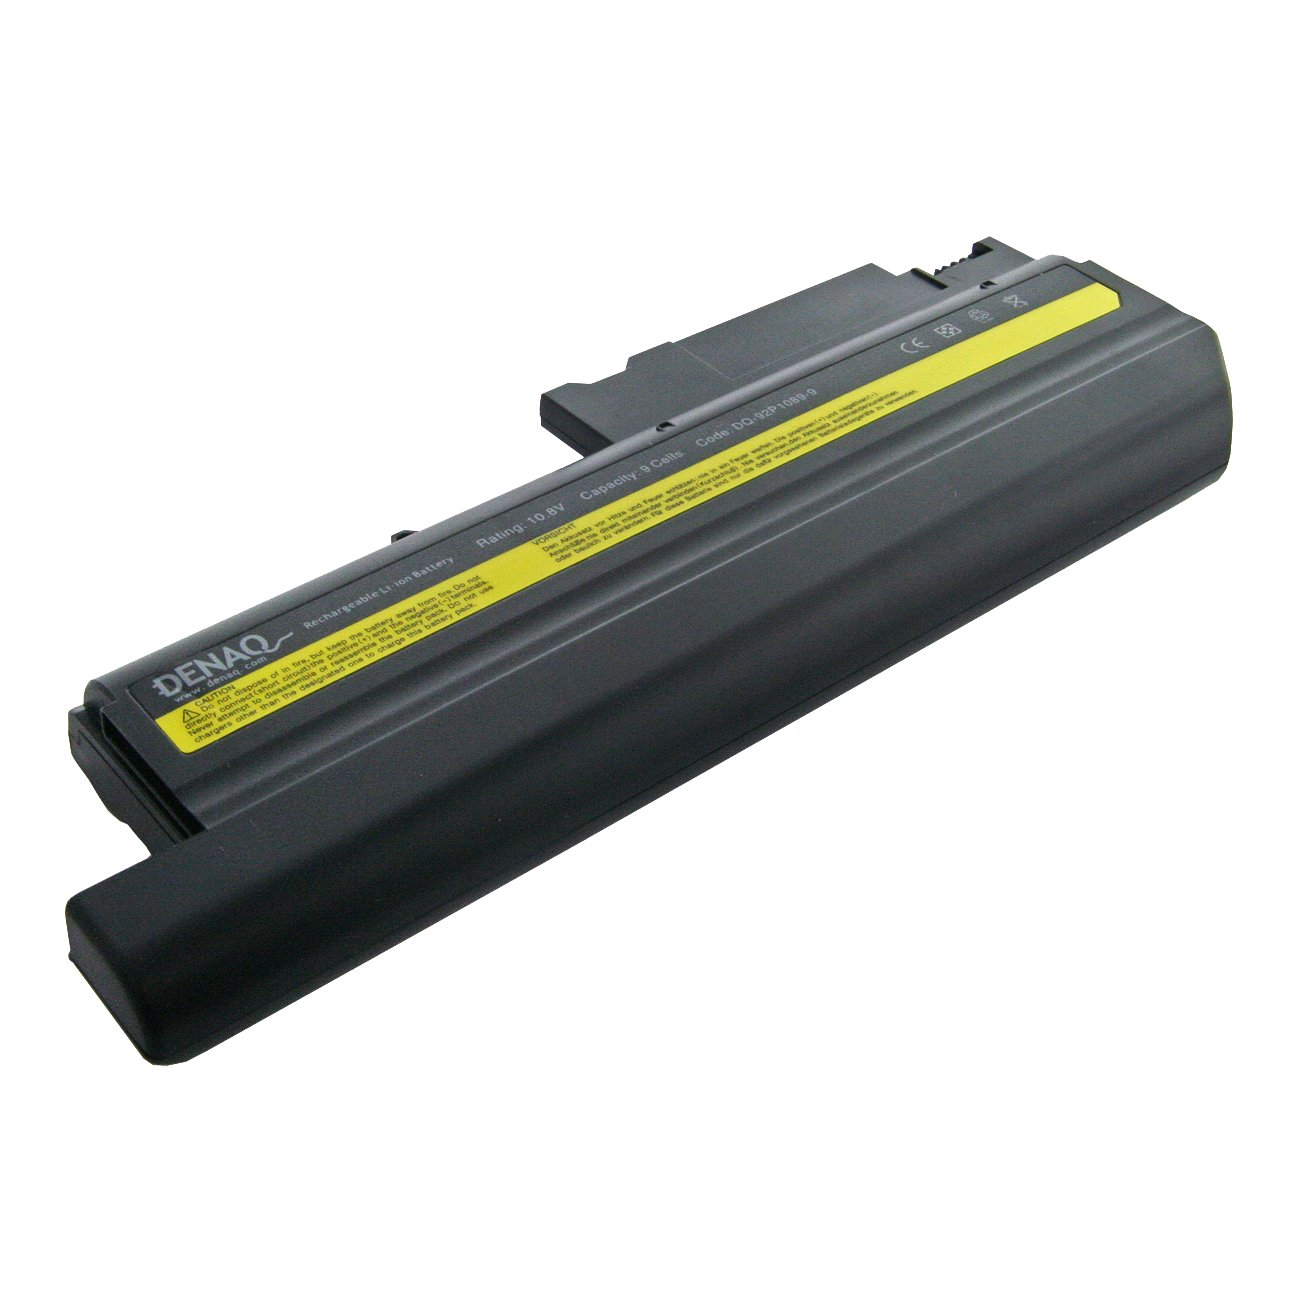 Denaq Branded Replacement Laptop Battery For Ibm Thinkpad